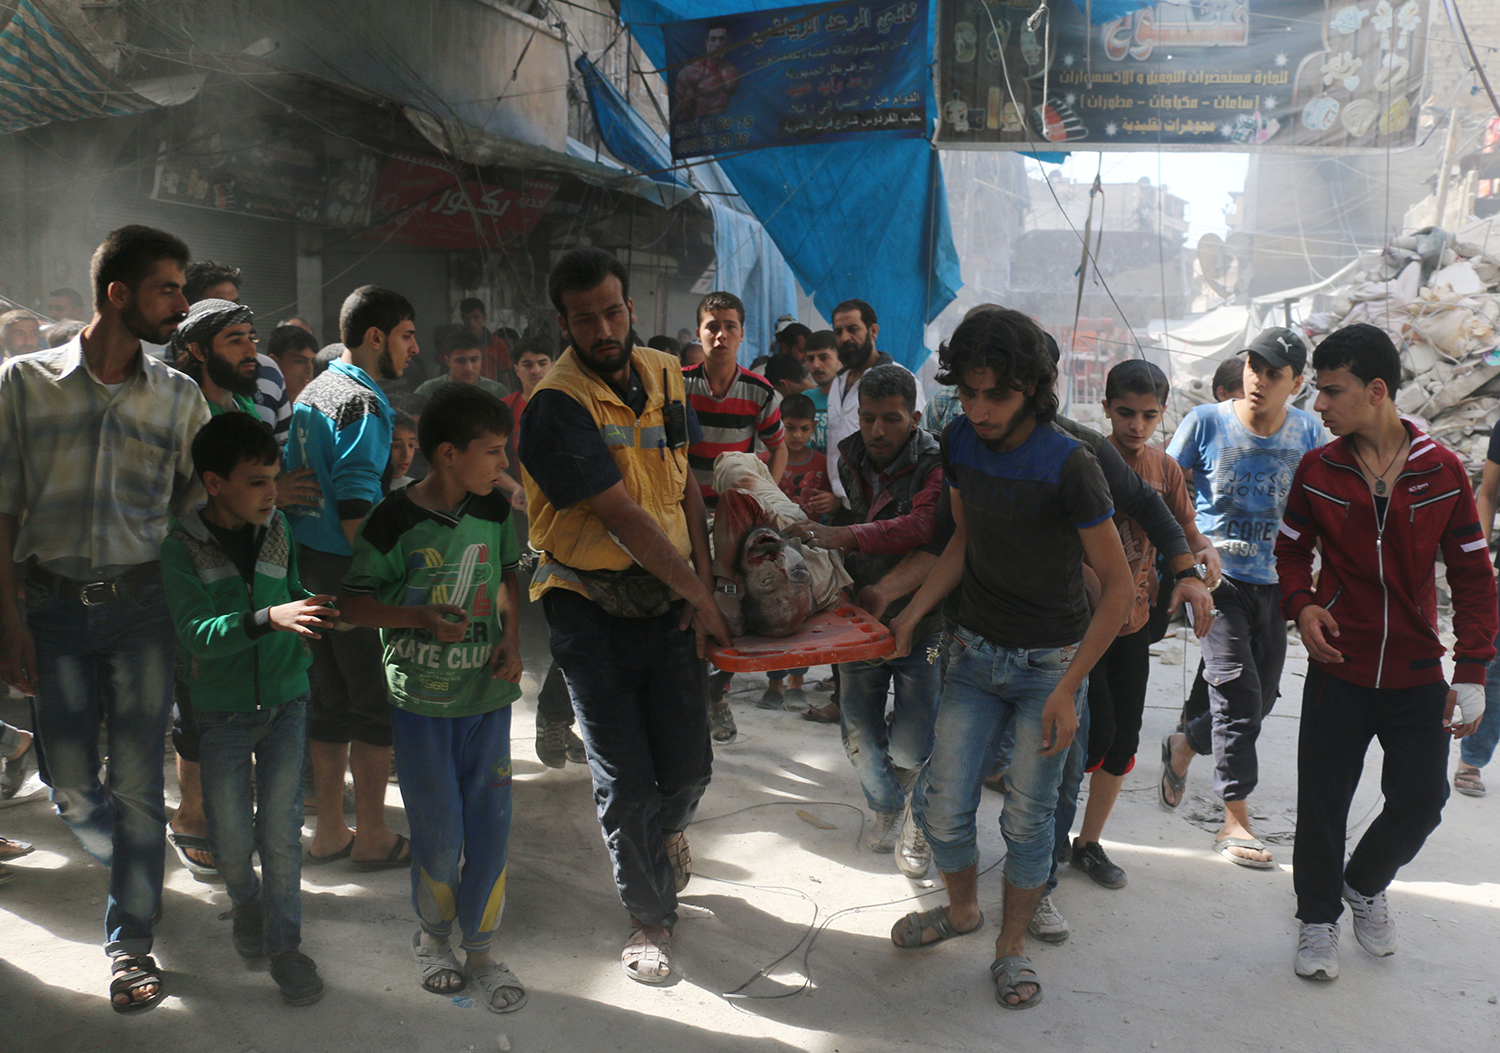 TOPSHOT - Syrians carry the body of a man following air strikes on the rebel-held Fardous neighbourhood of the northern embattled Syrian city of Aleppo on October 12, 2016.  / AFP PHOTO / AMEER ALHALBI / TT / kod 444